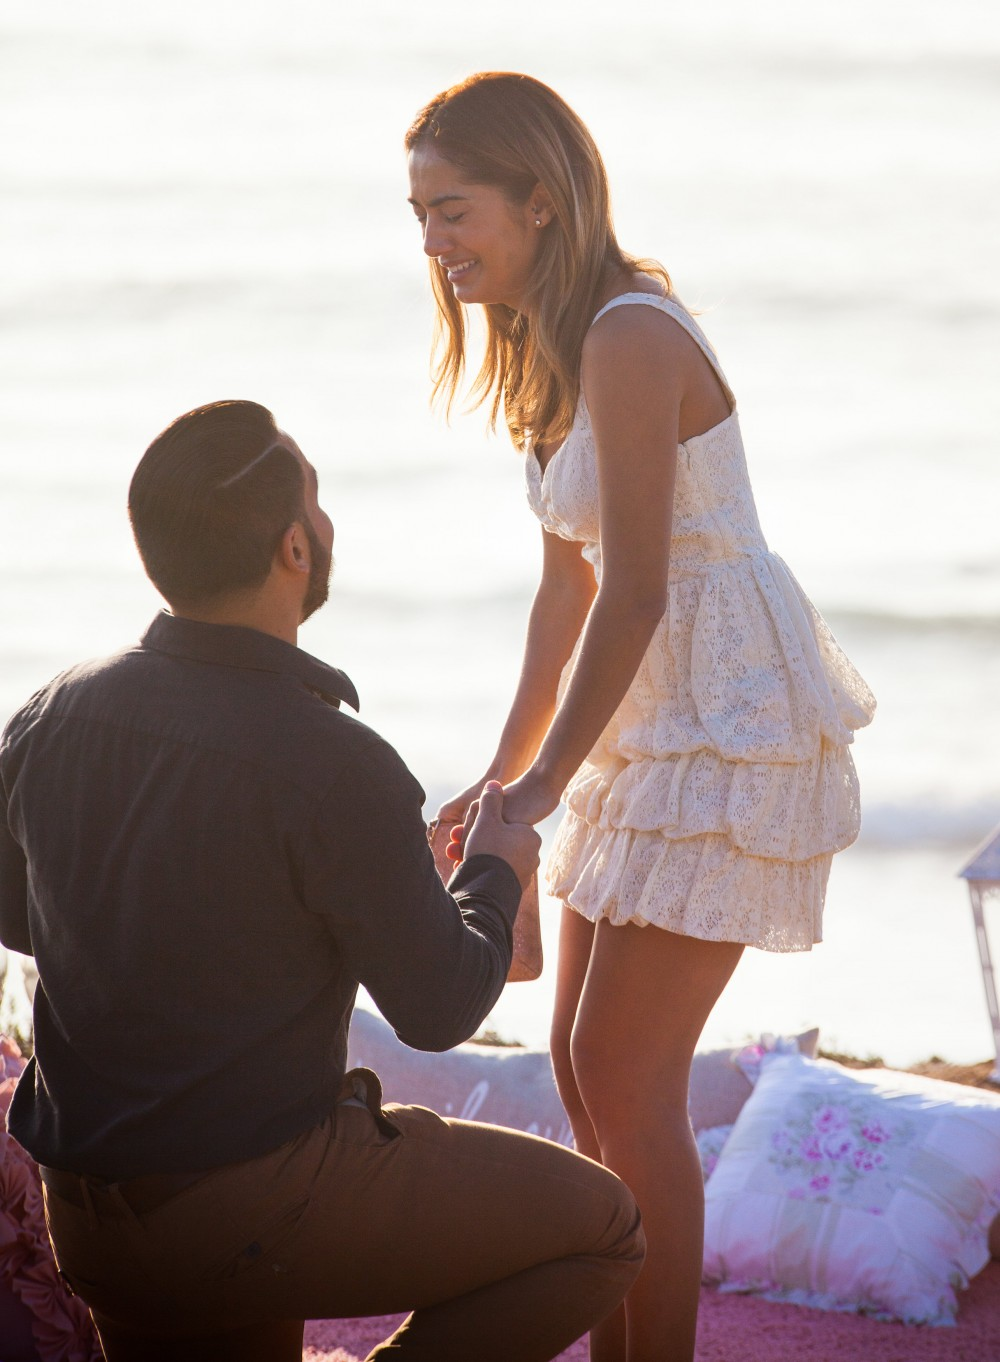 Image 6 of Diego and Jessica's Cliff Marriage Proposal at Sunset